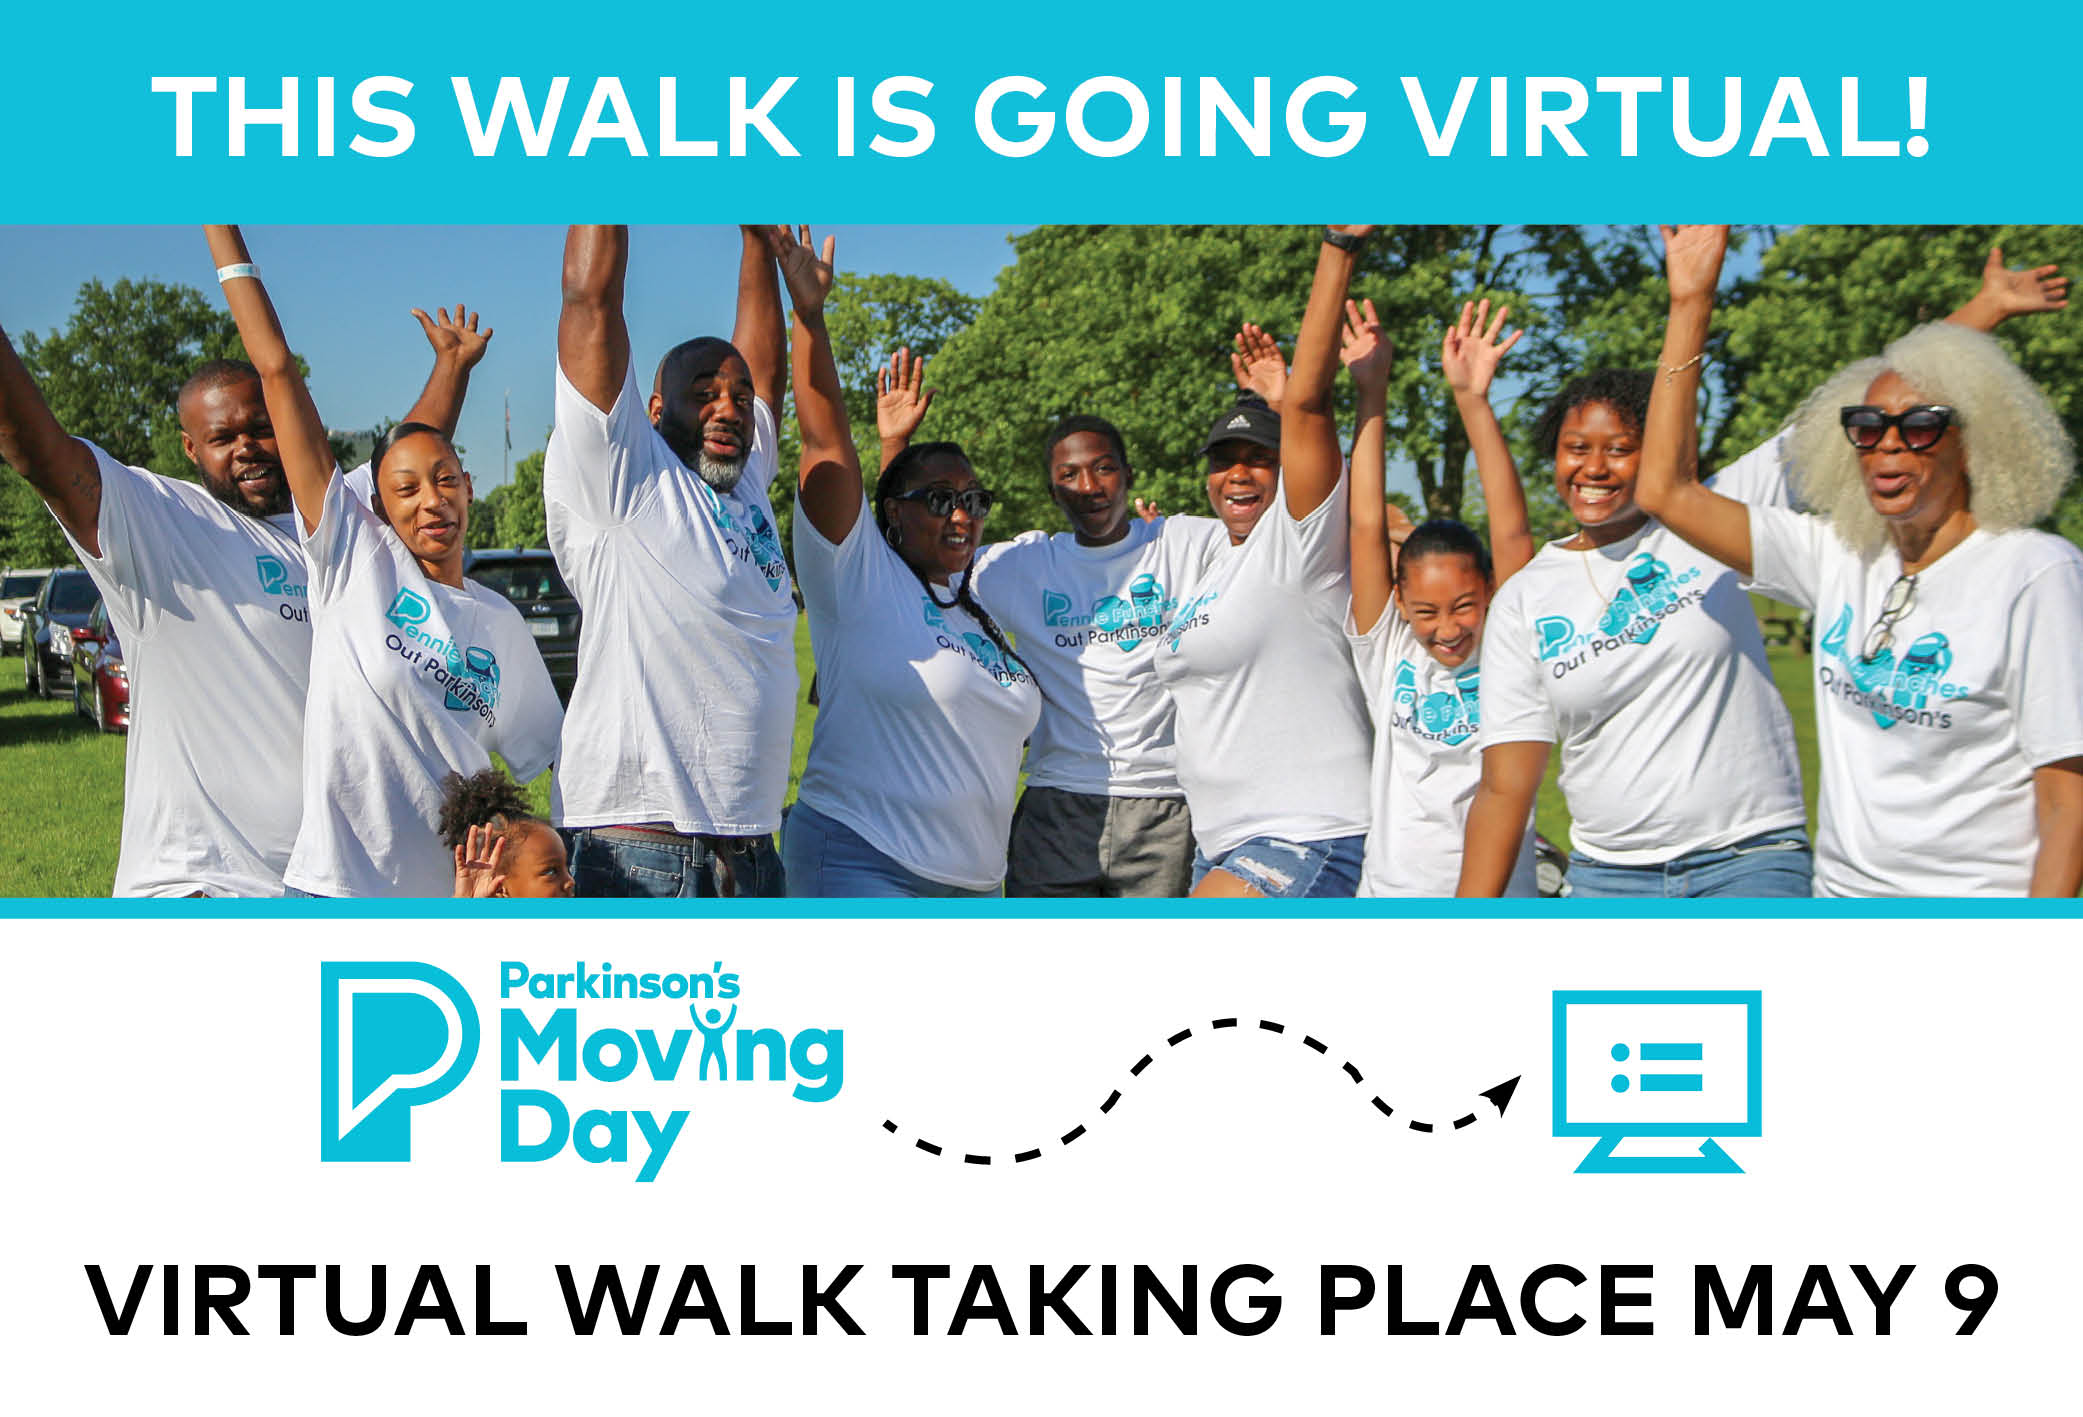 This walk is going virtual on May 9.